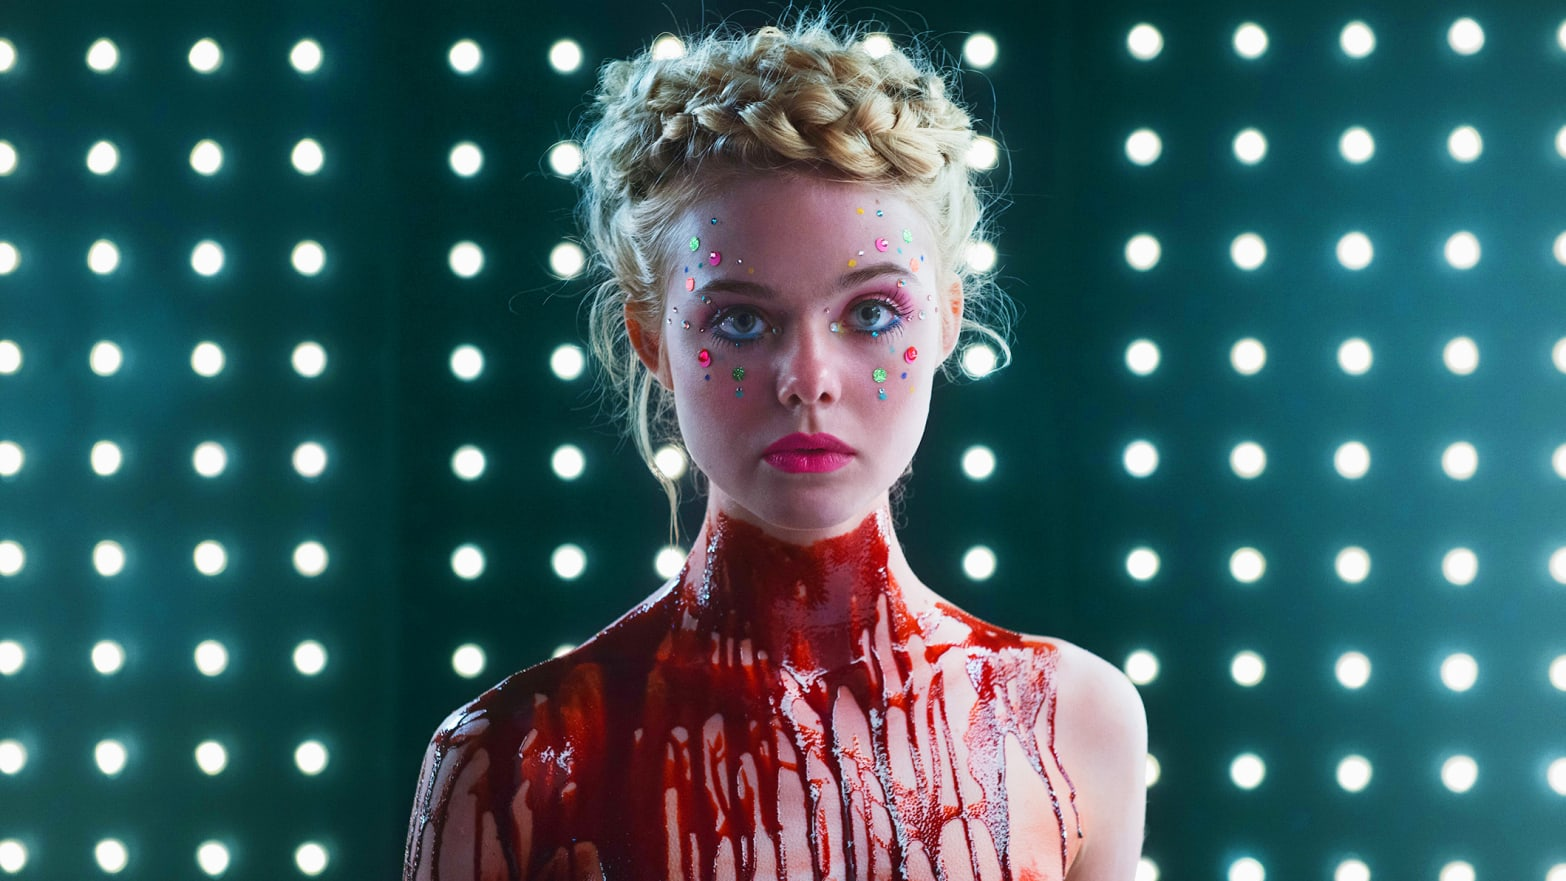 Bondage, Necrophilia, and Models: Making 'Neon Demon,' the Most Twisted Movie of the Year